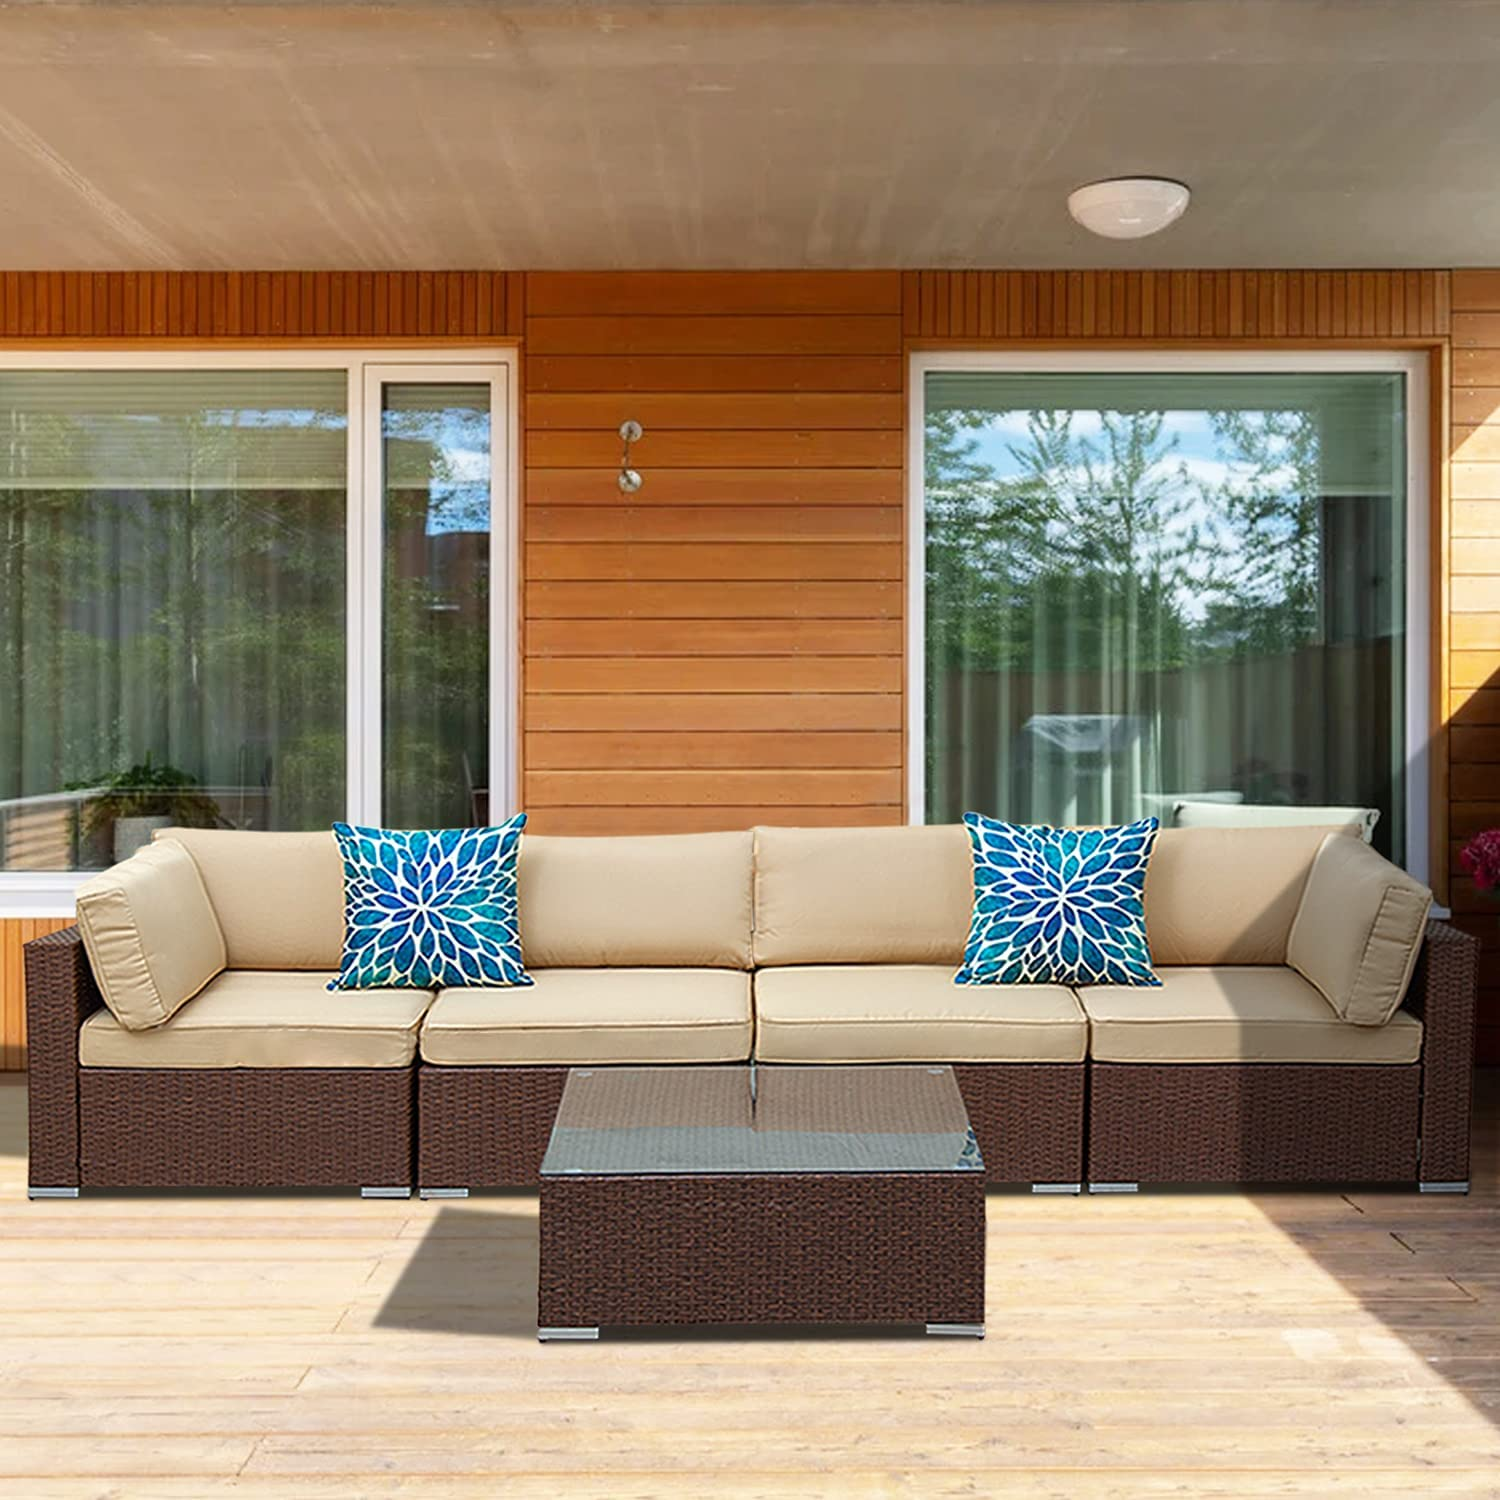 Auzfy 5 Piece Outdoor Patio store Sets Atlanta Mall Furniture Sectional Sof